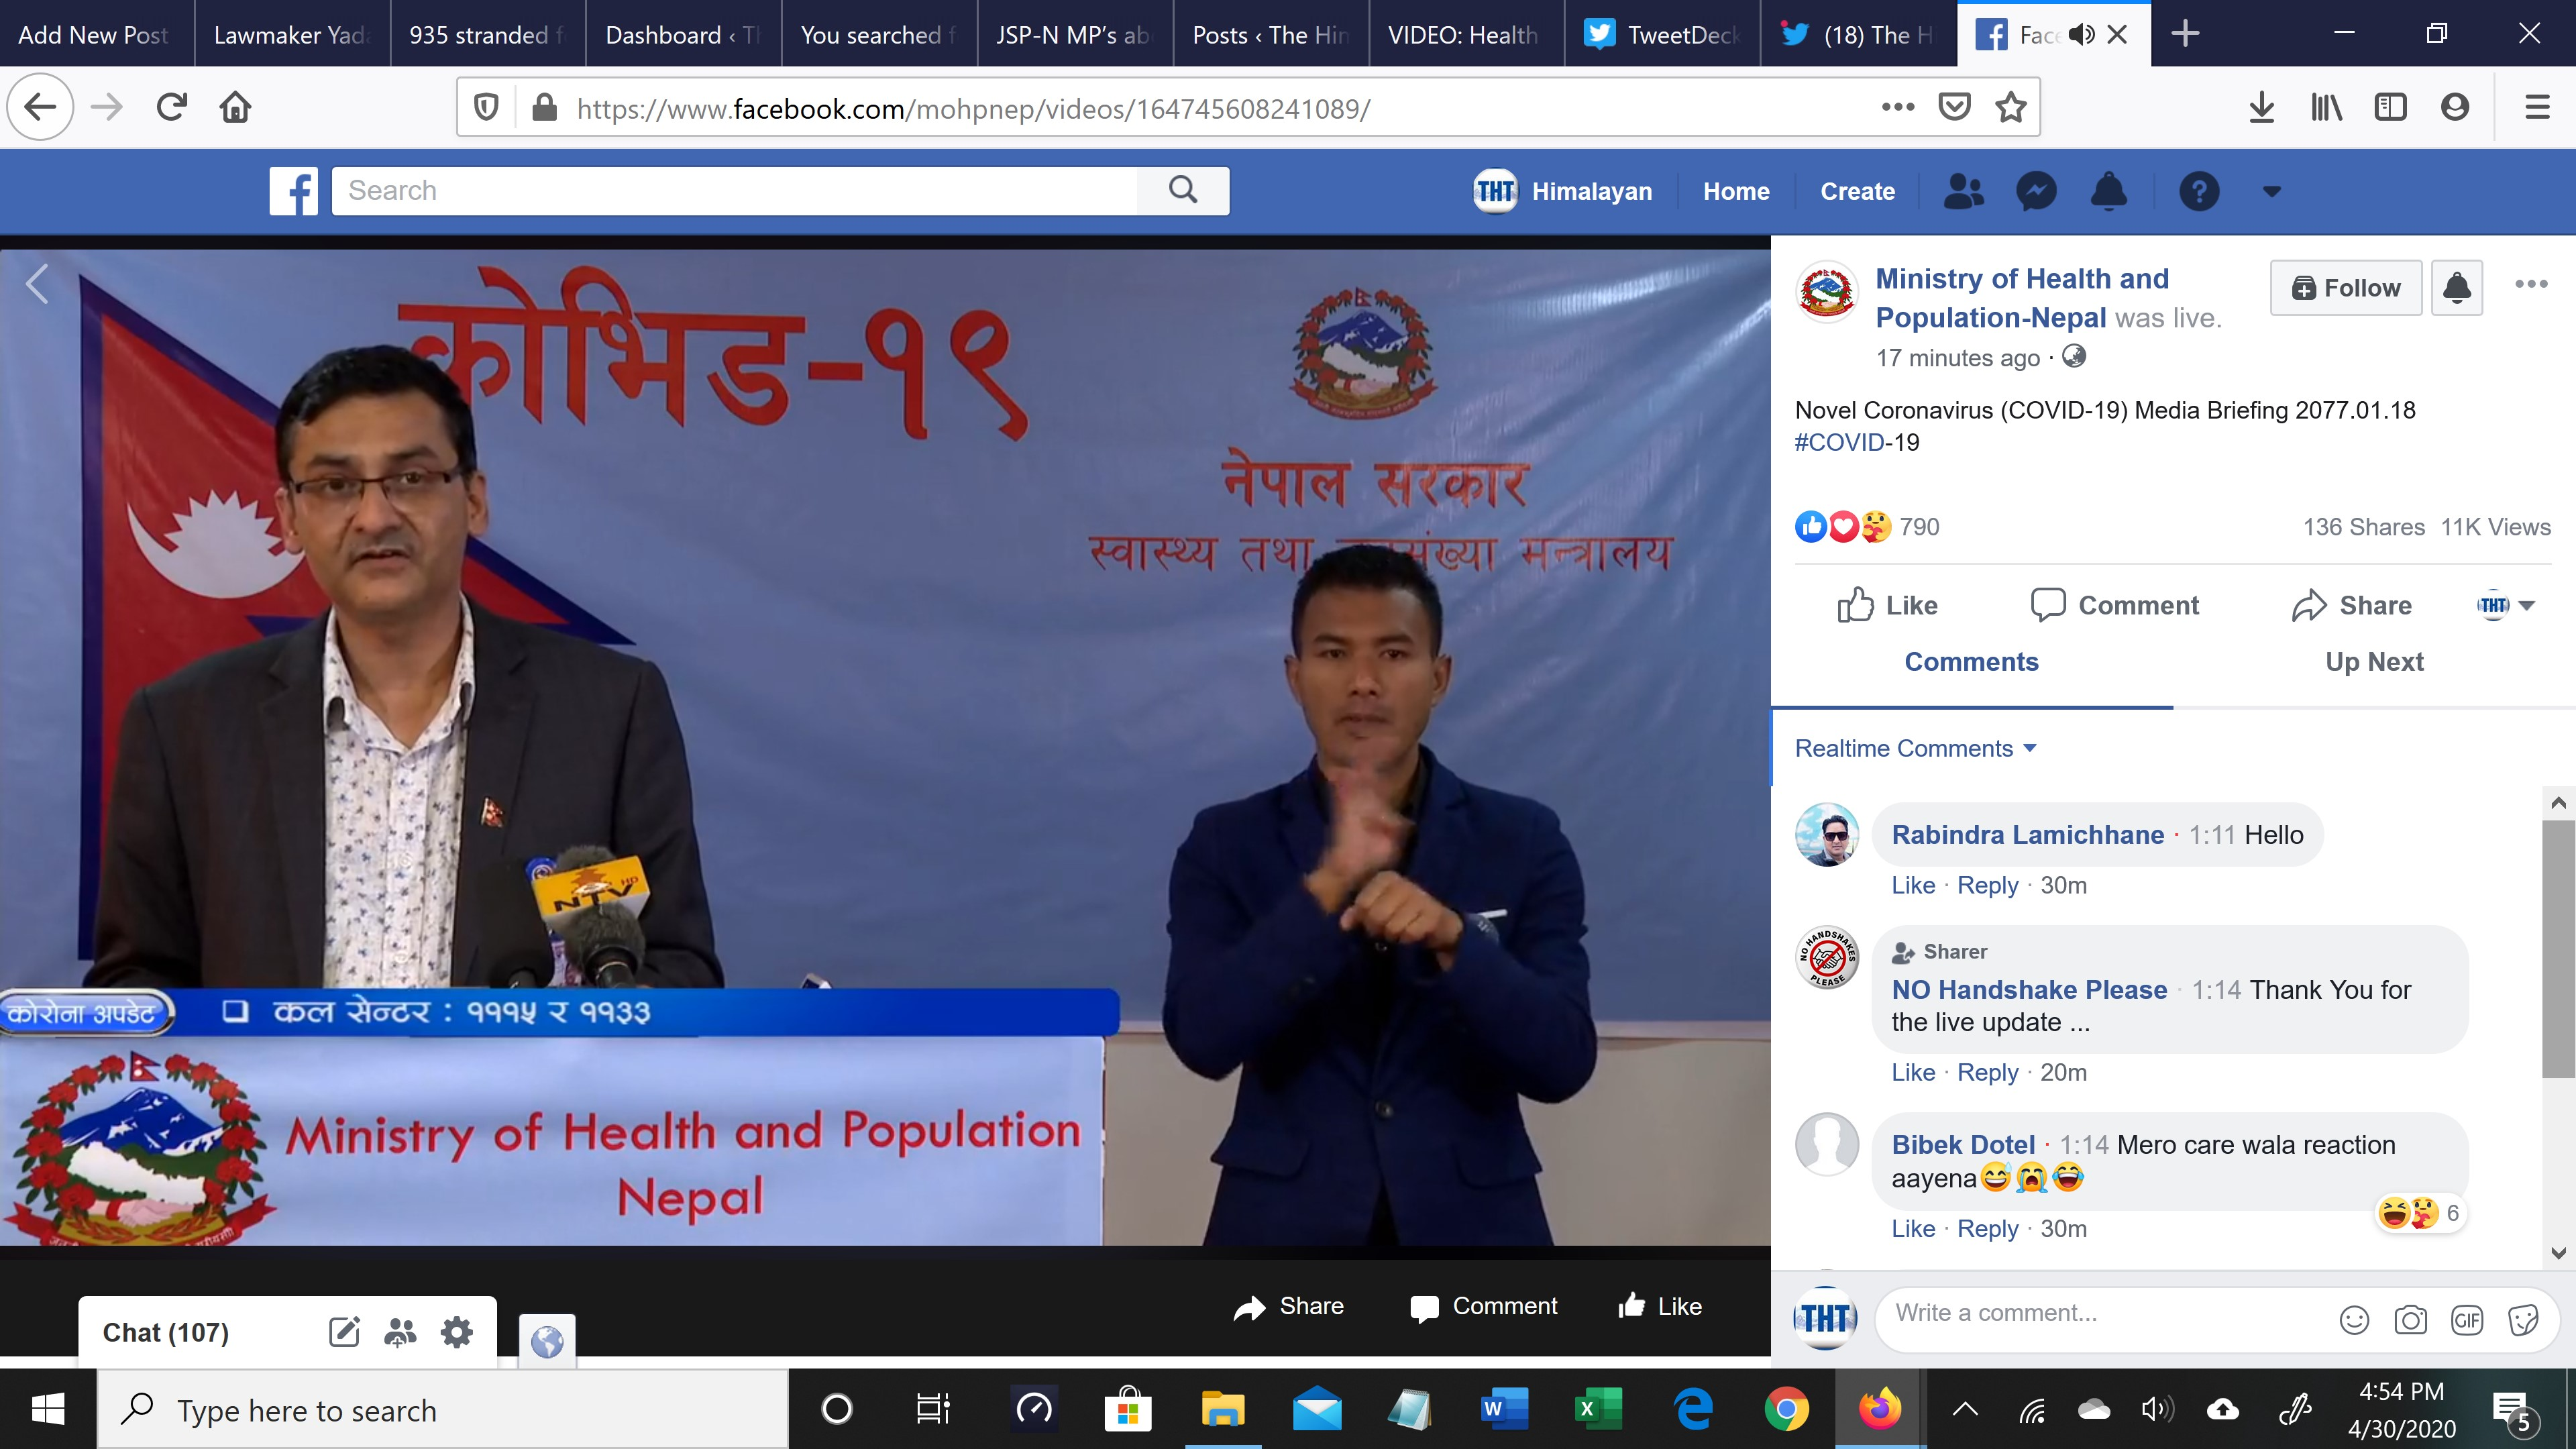 A screenshot of media briefing on COVID-19 by the Ministry of Health and Population (MoHP), on Thursday, April 30, 2020.